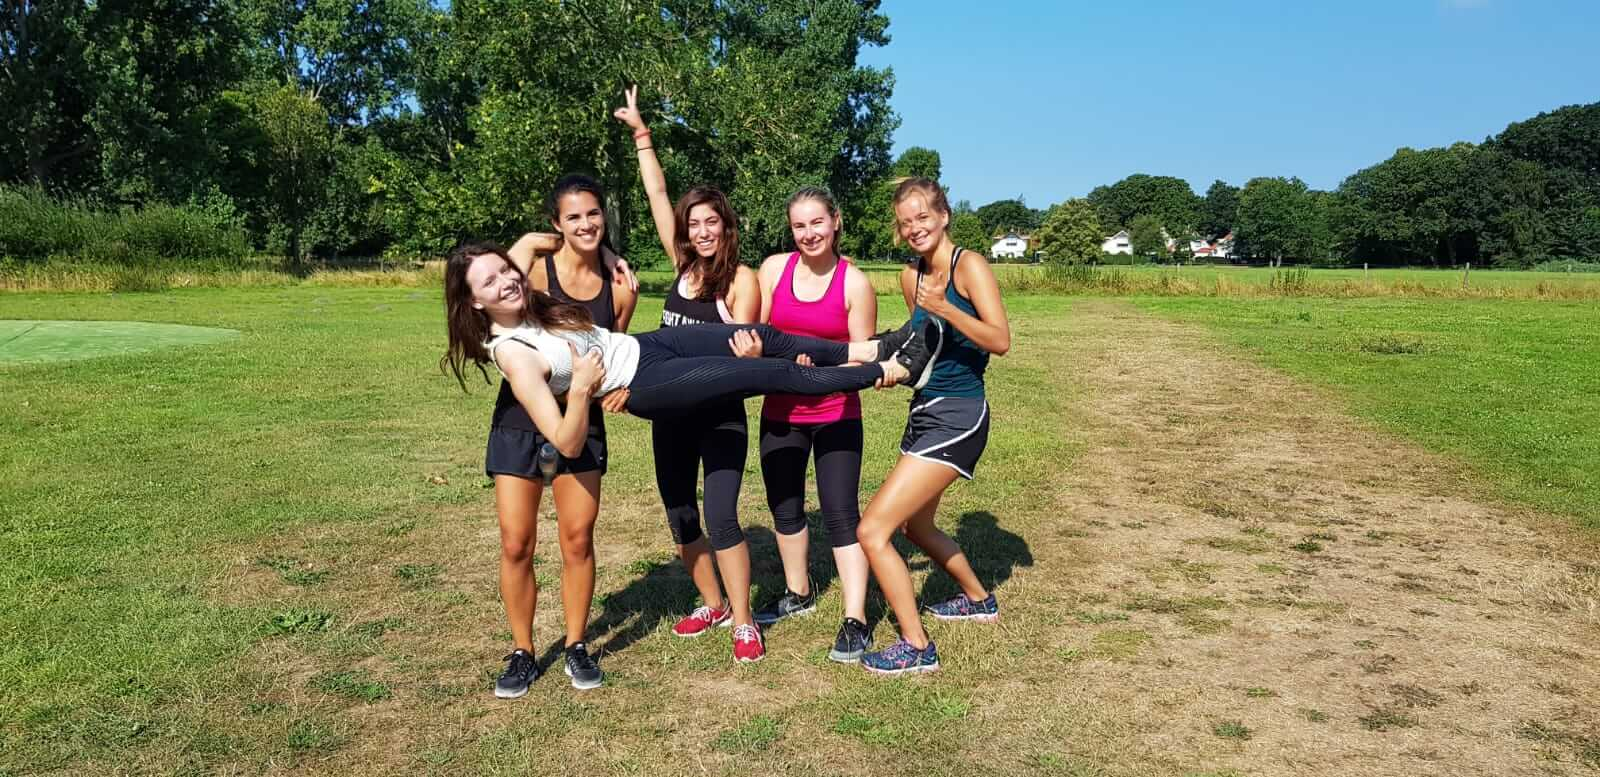 Bootcamp Heemstede